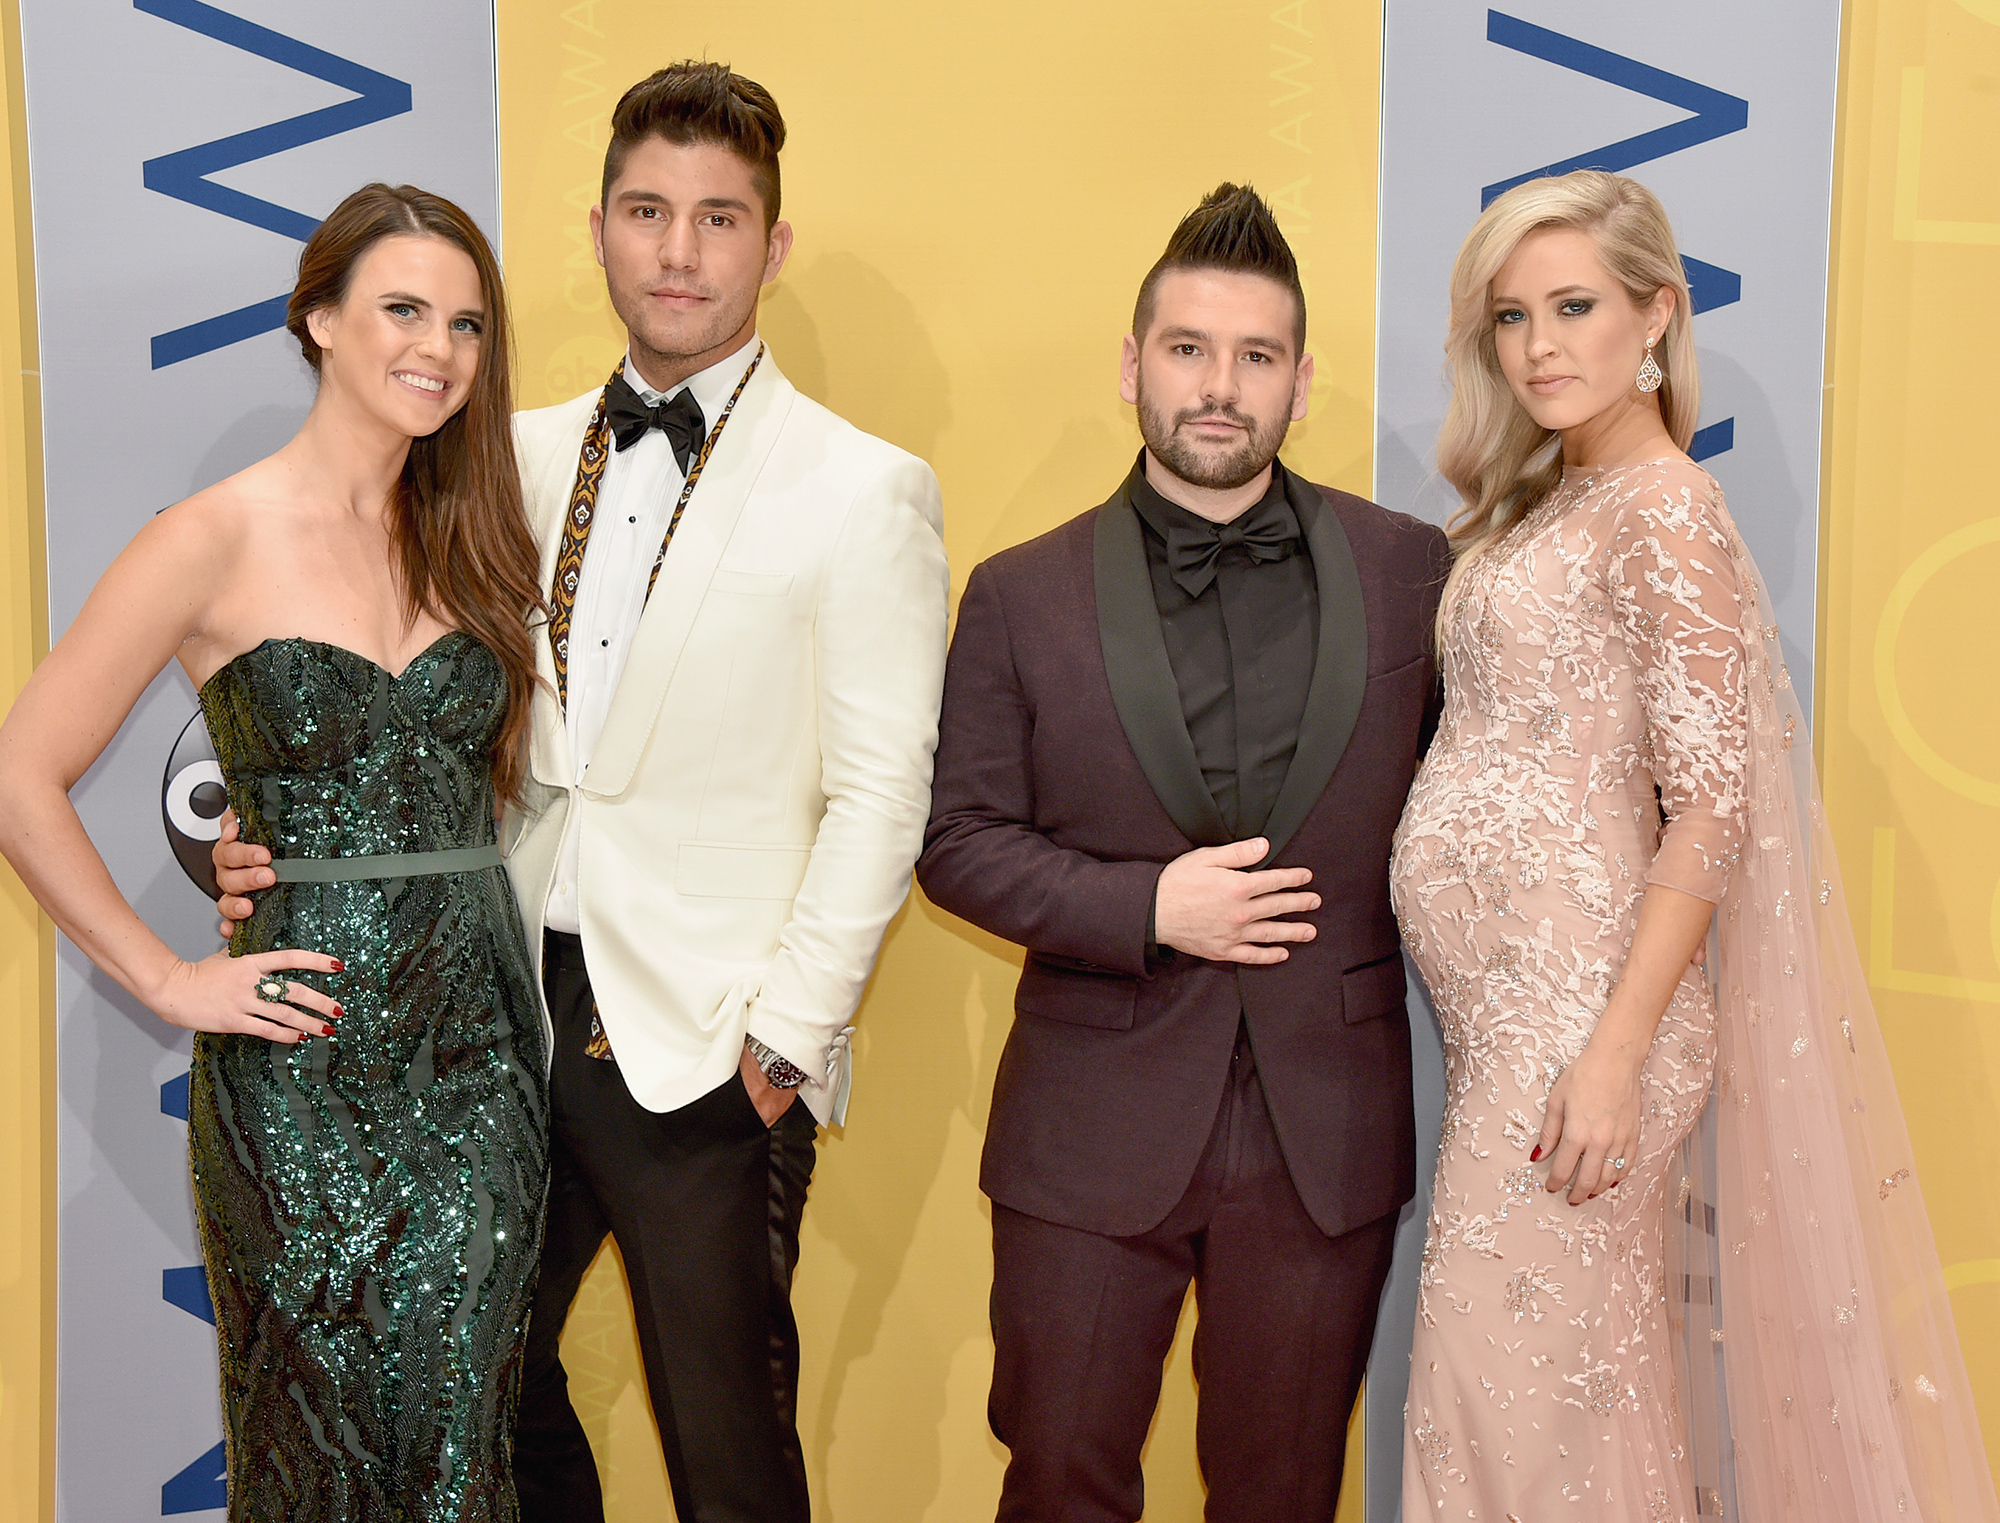 NASHVILLE, TN - NOVEMBER 02:  (L-R) Abby Law, Dan Smyers of Dan + Shay, Shay Mooney of Dan + Shay, and Hannah Billingsley attend the 50th annual CMA Awards at the Bridgestone Arena on November 2, 2016 in Nashville, Tennessee.  (Photo by John Shearer/WireImage)